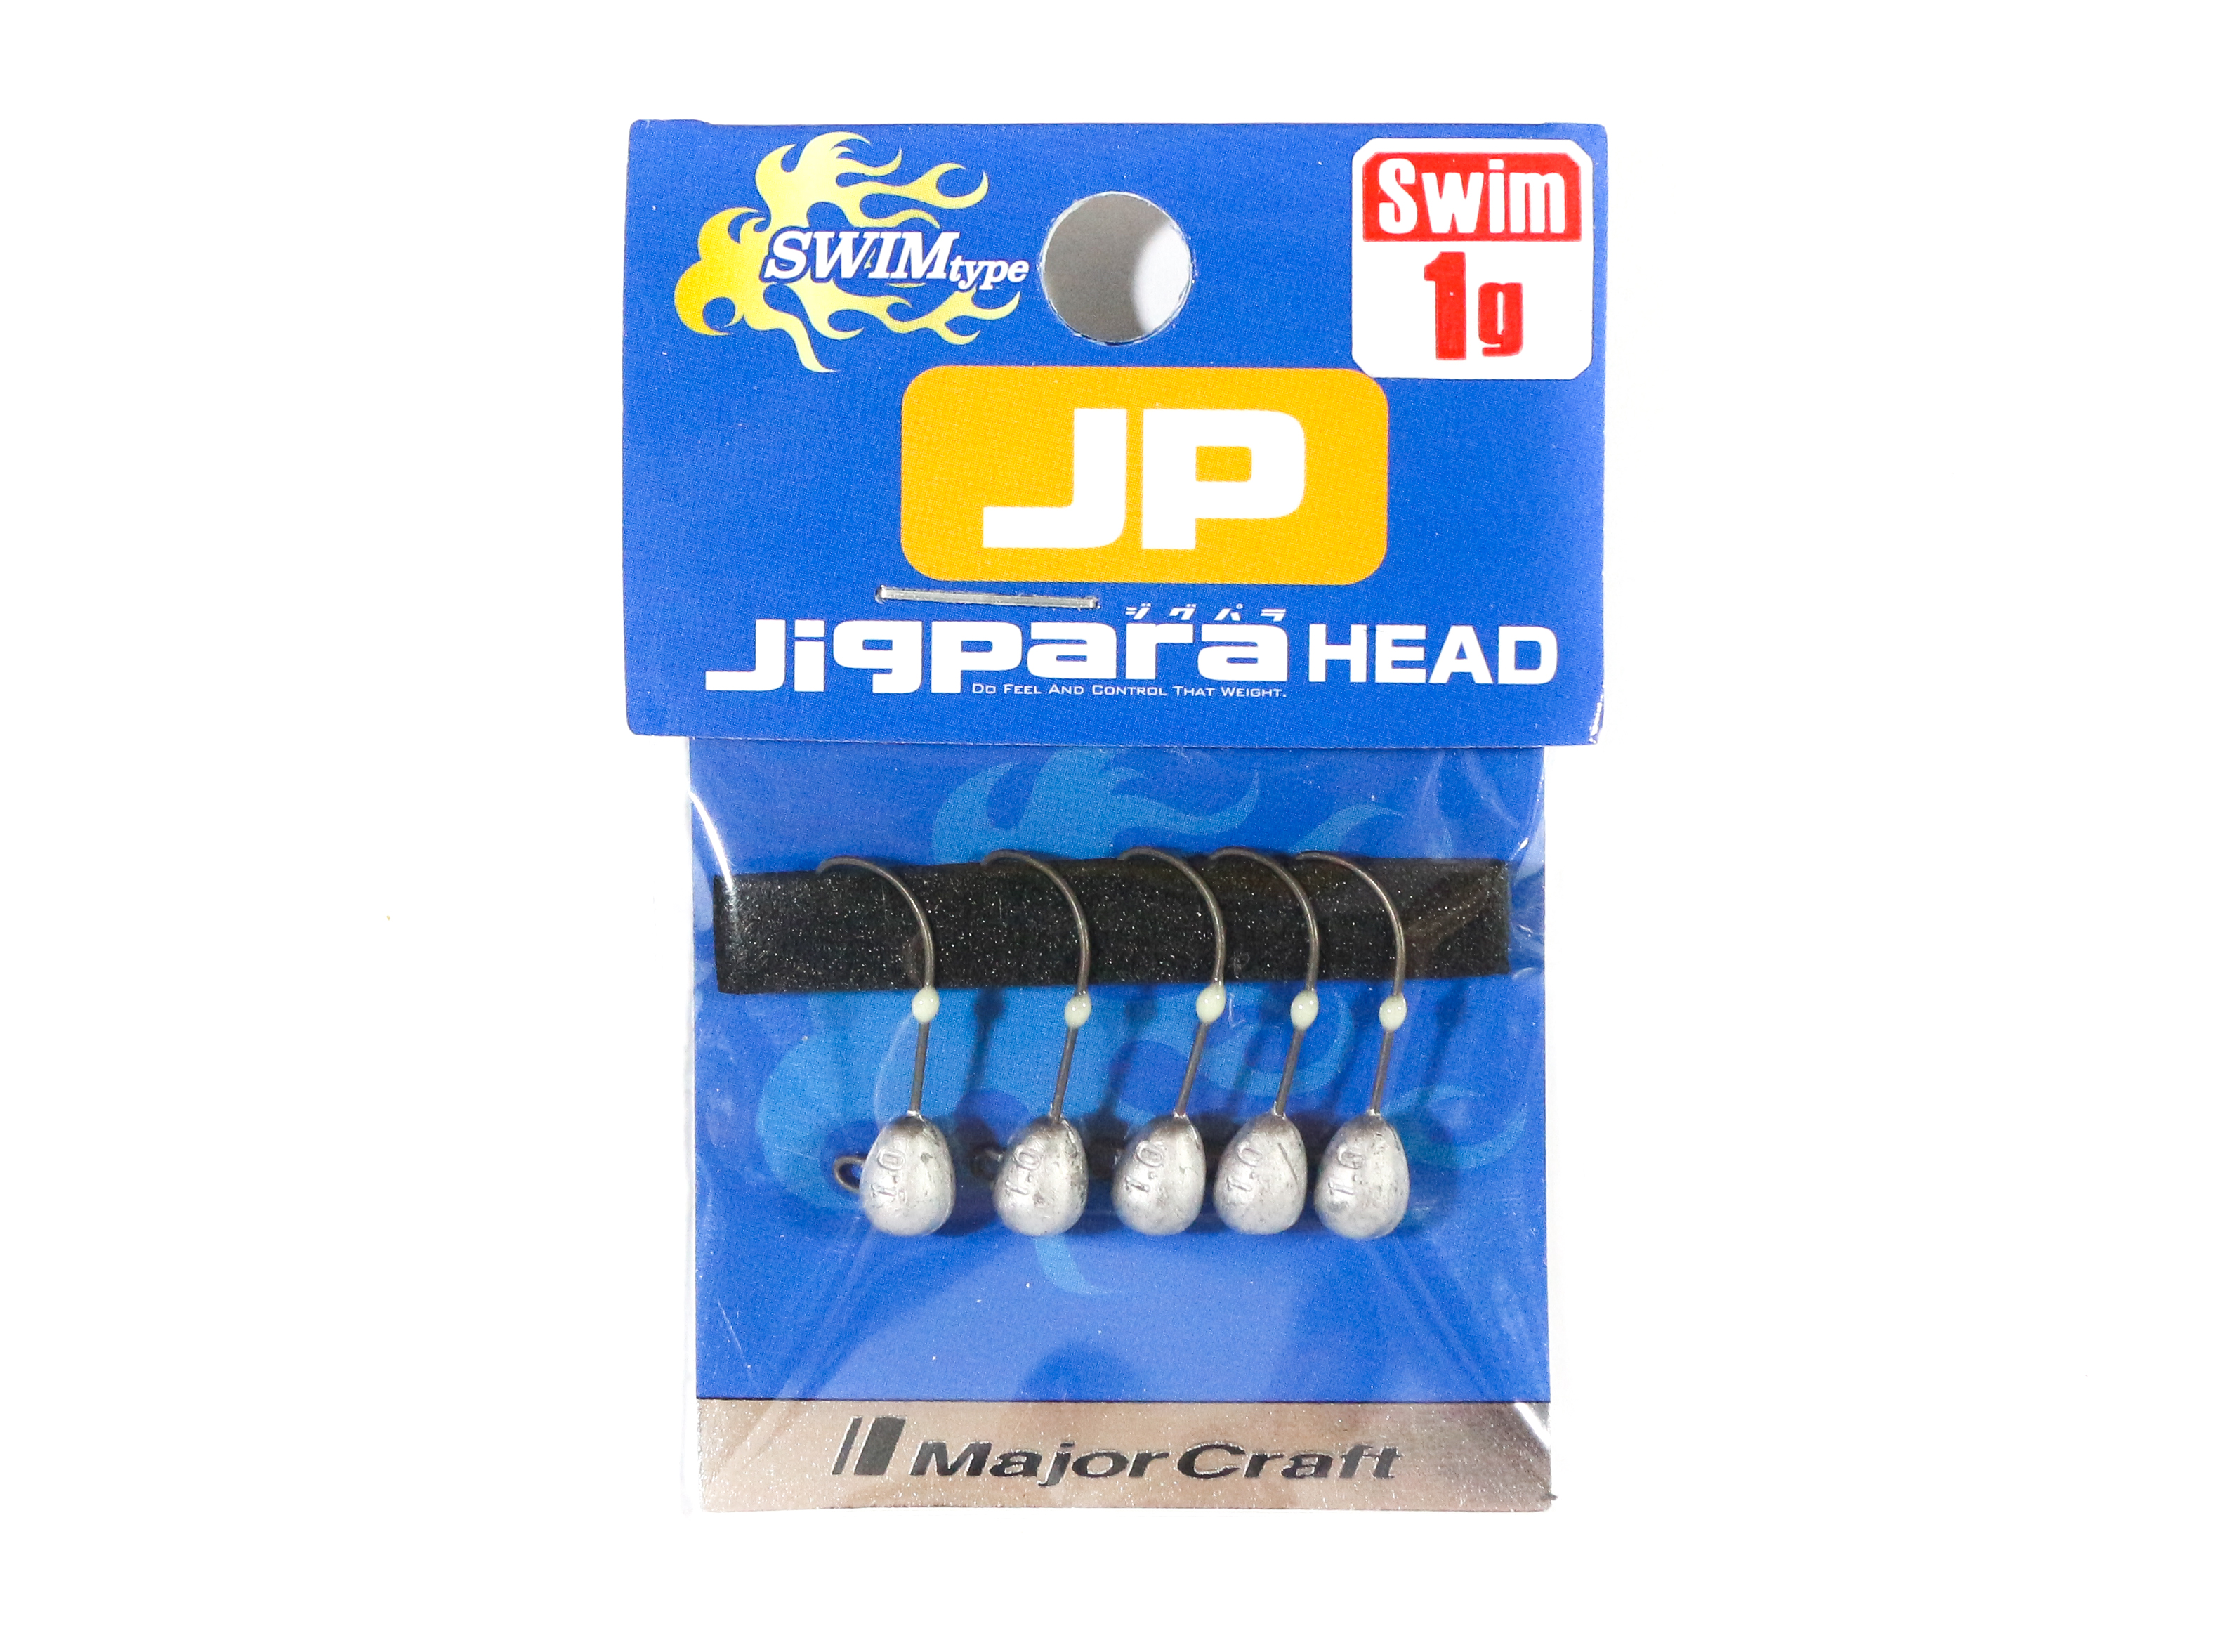 Major Craft Jig Head Swim JPHD-1.0 grams (4401)